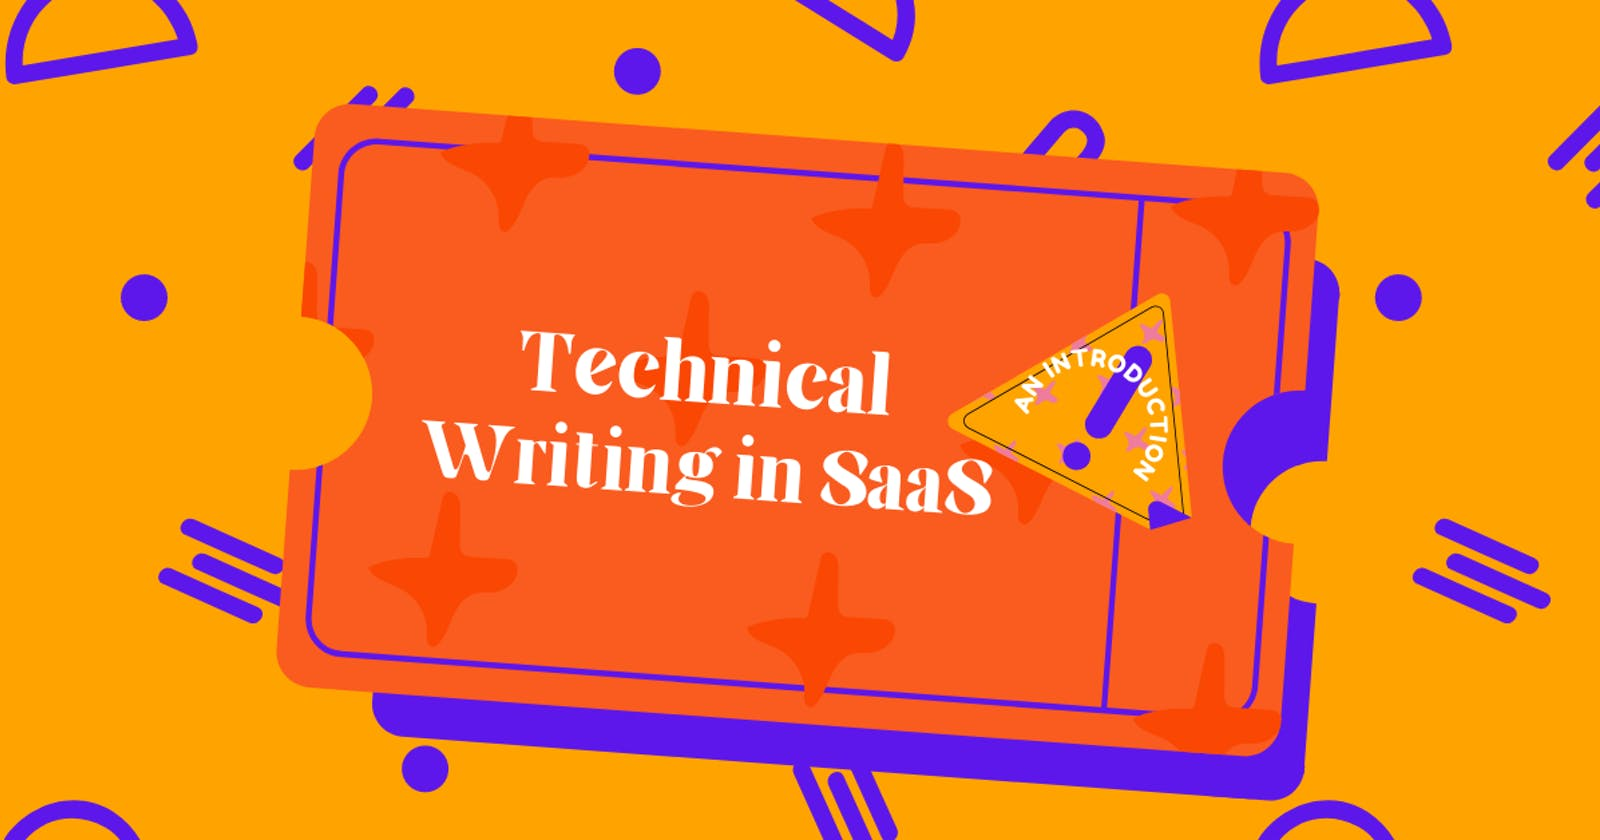 Technical Writing in SaaS - An Introduction